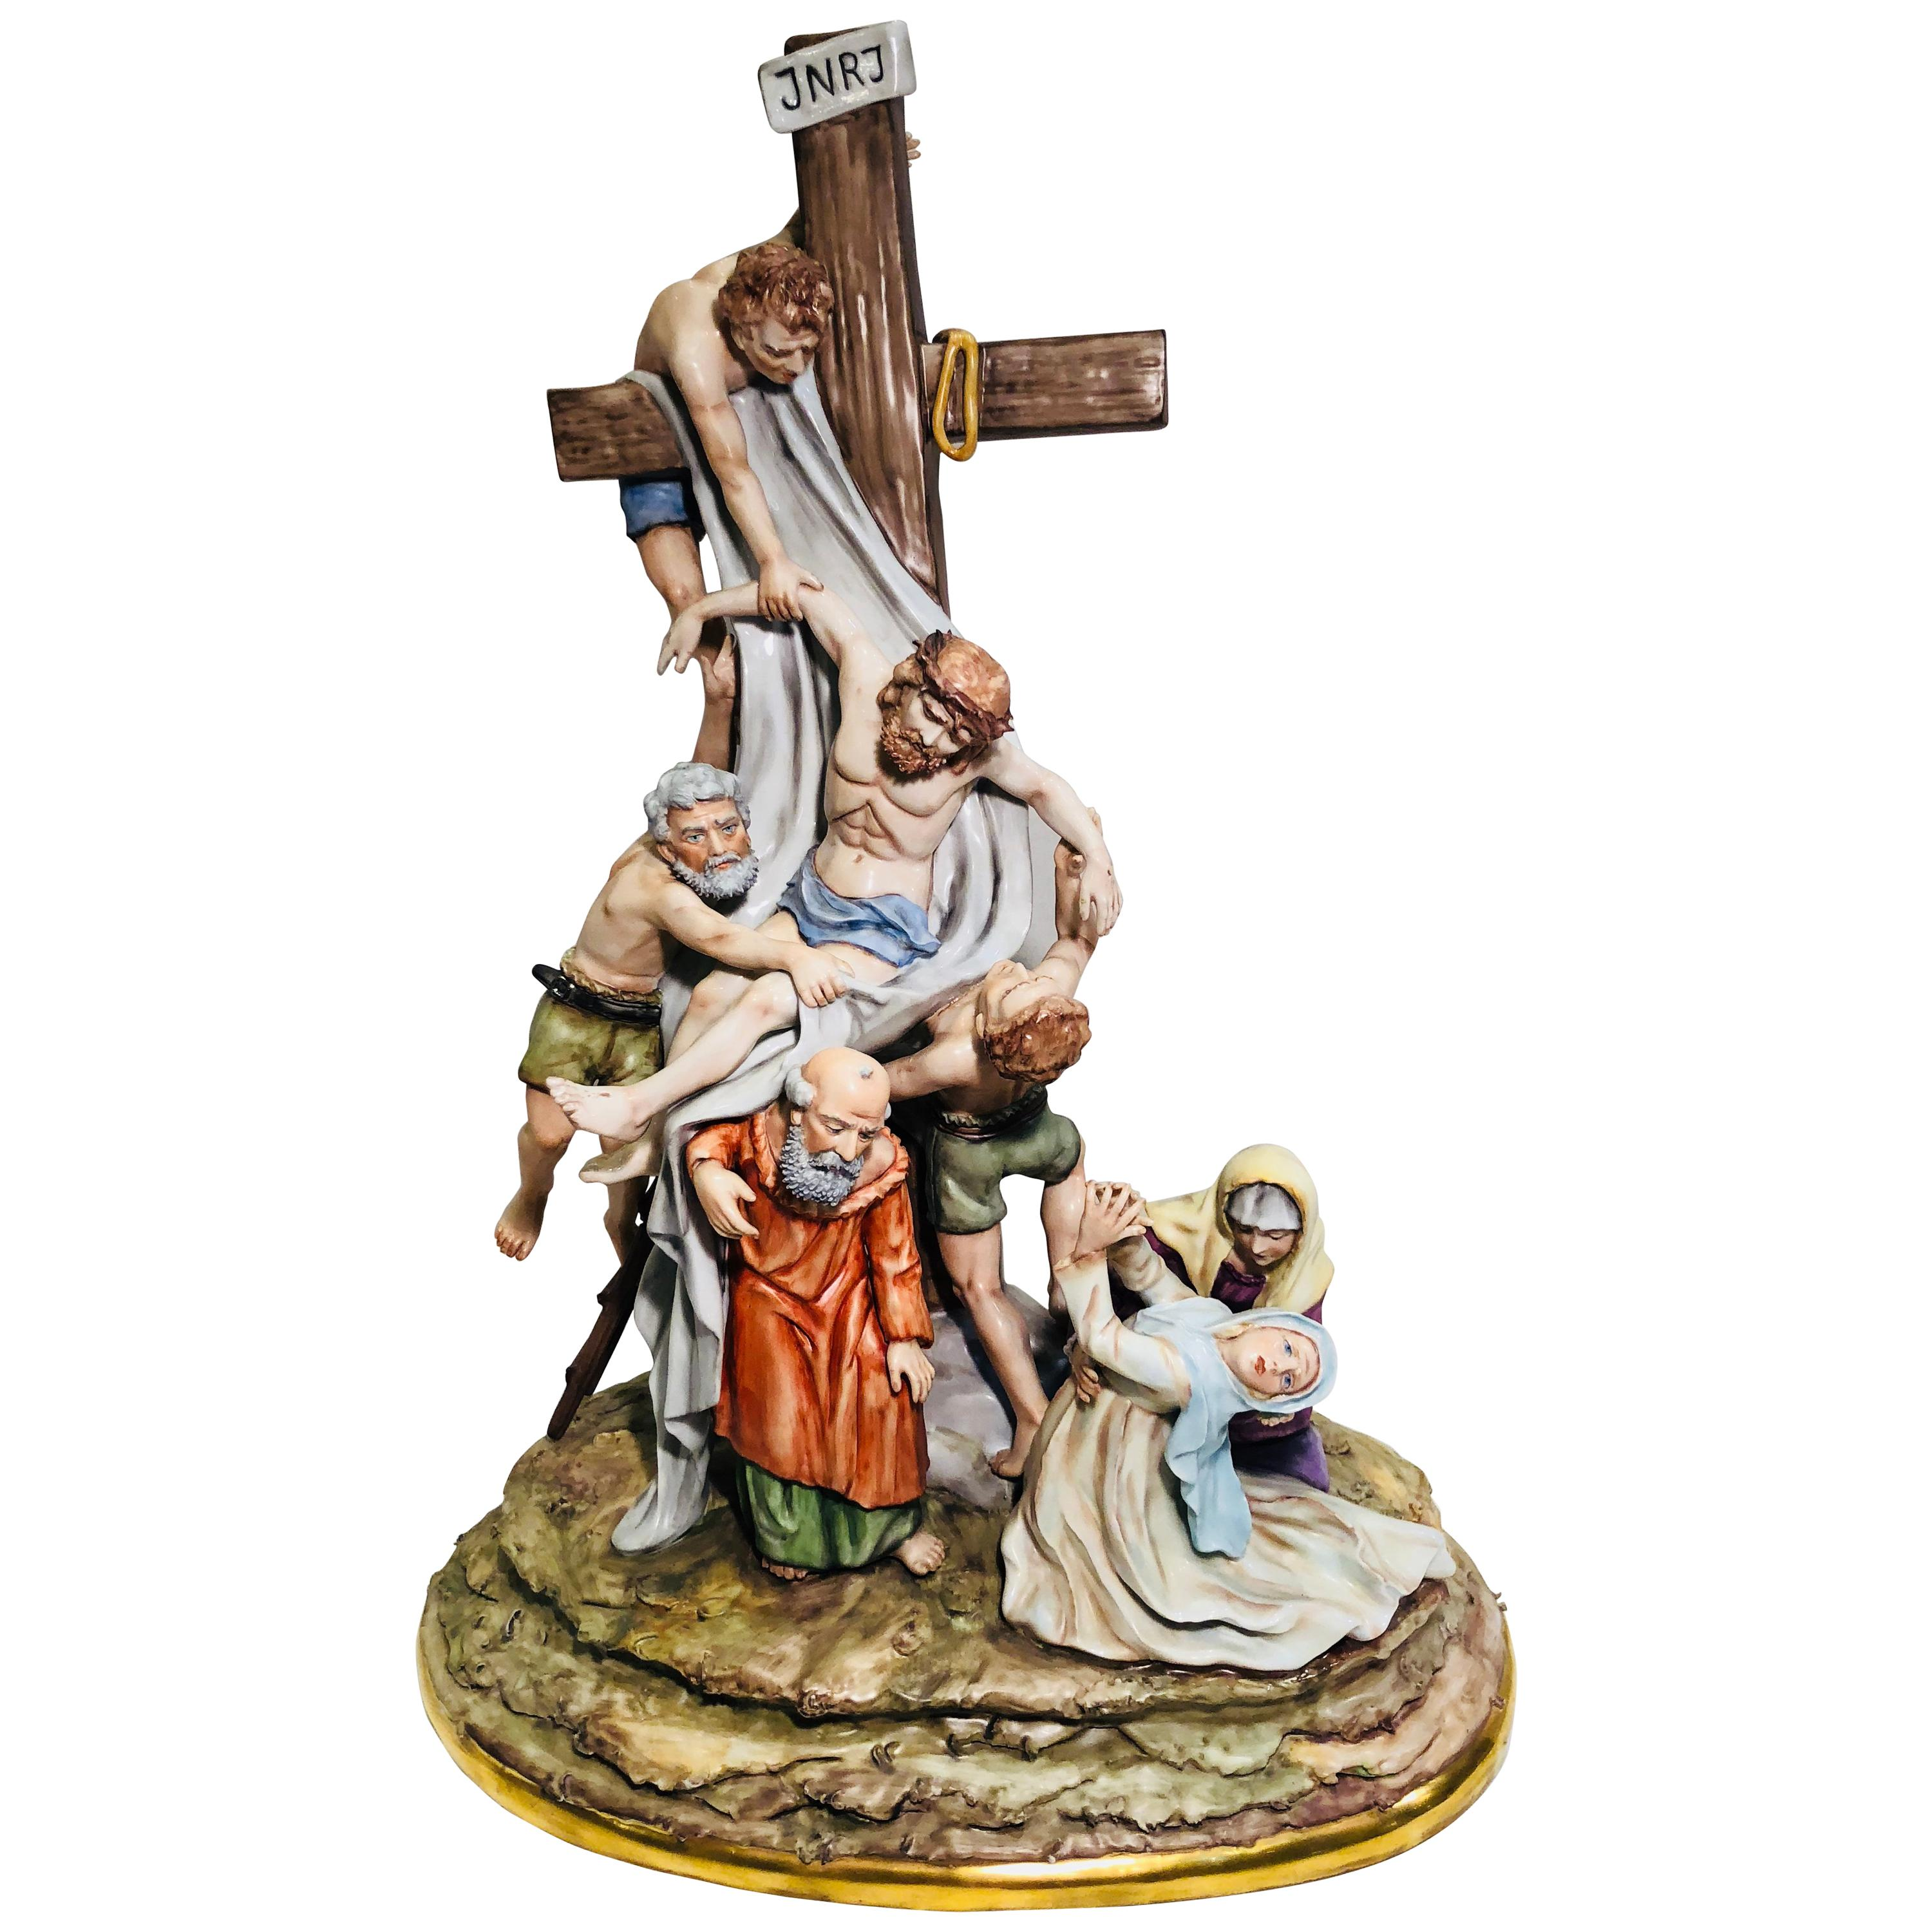 Sitzendorf Germany 13th Station of the Cross Museum Quality Porcelain Scene